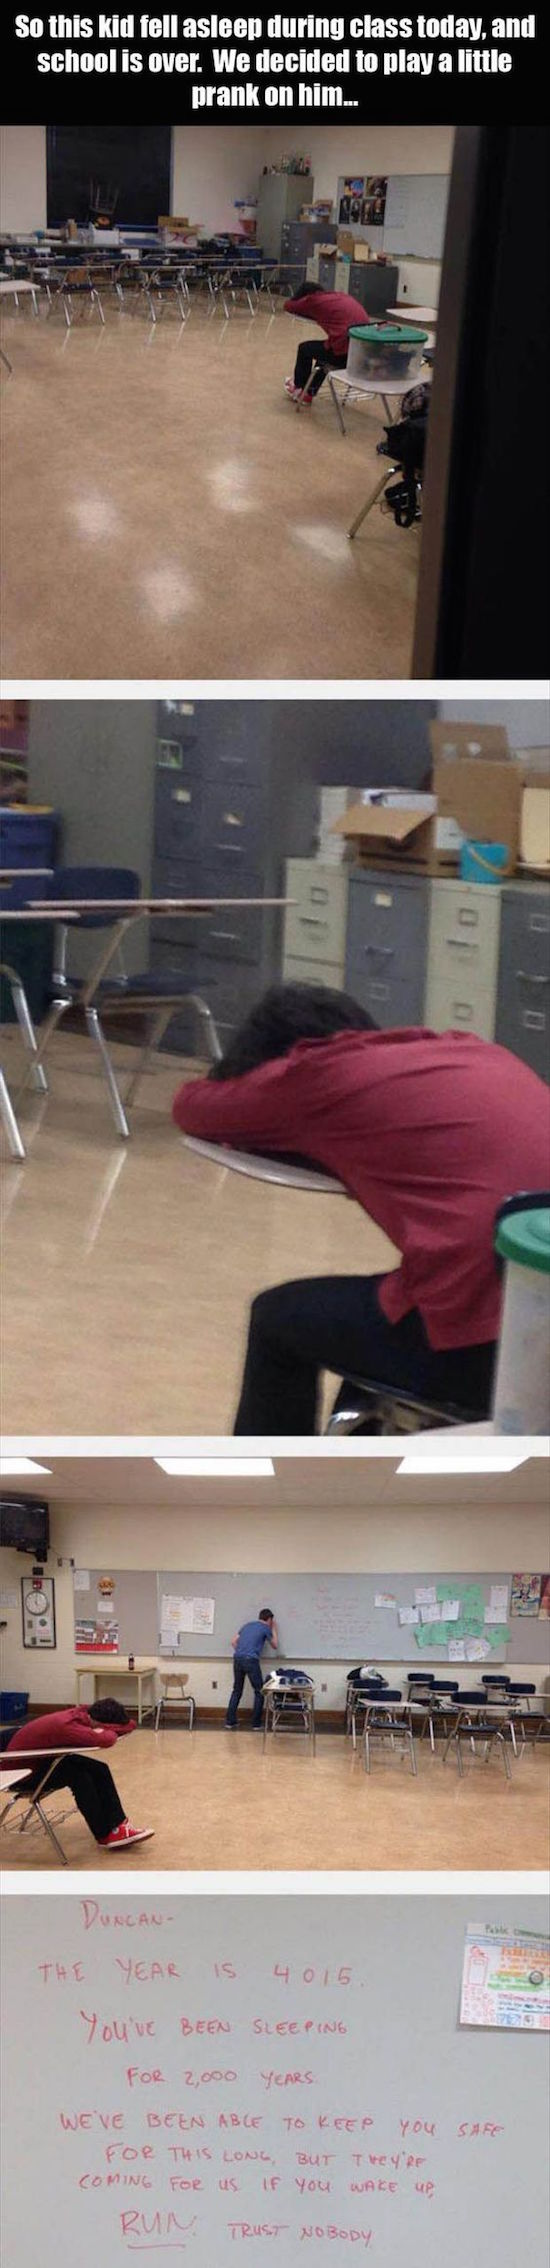 funny prank played on kid who feel asleep in class